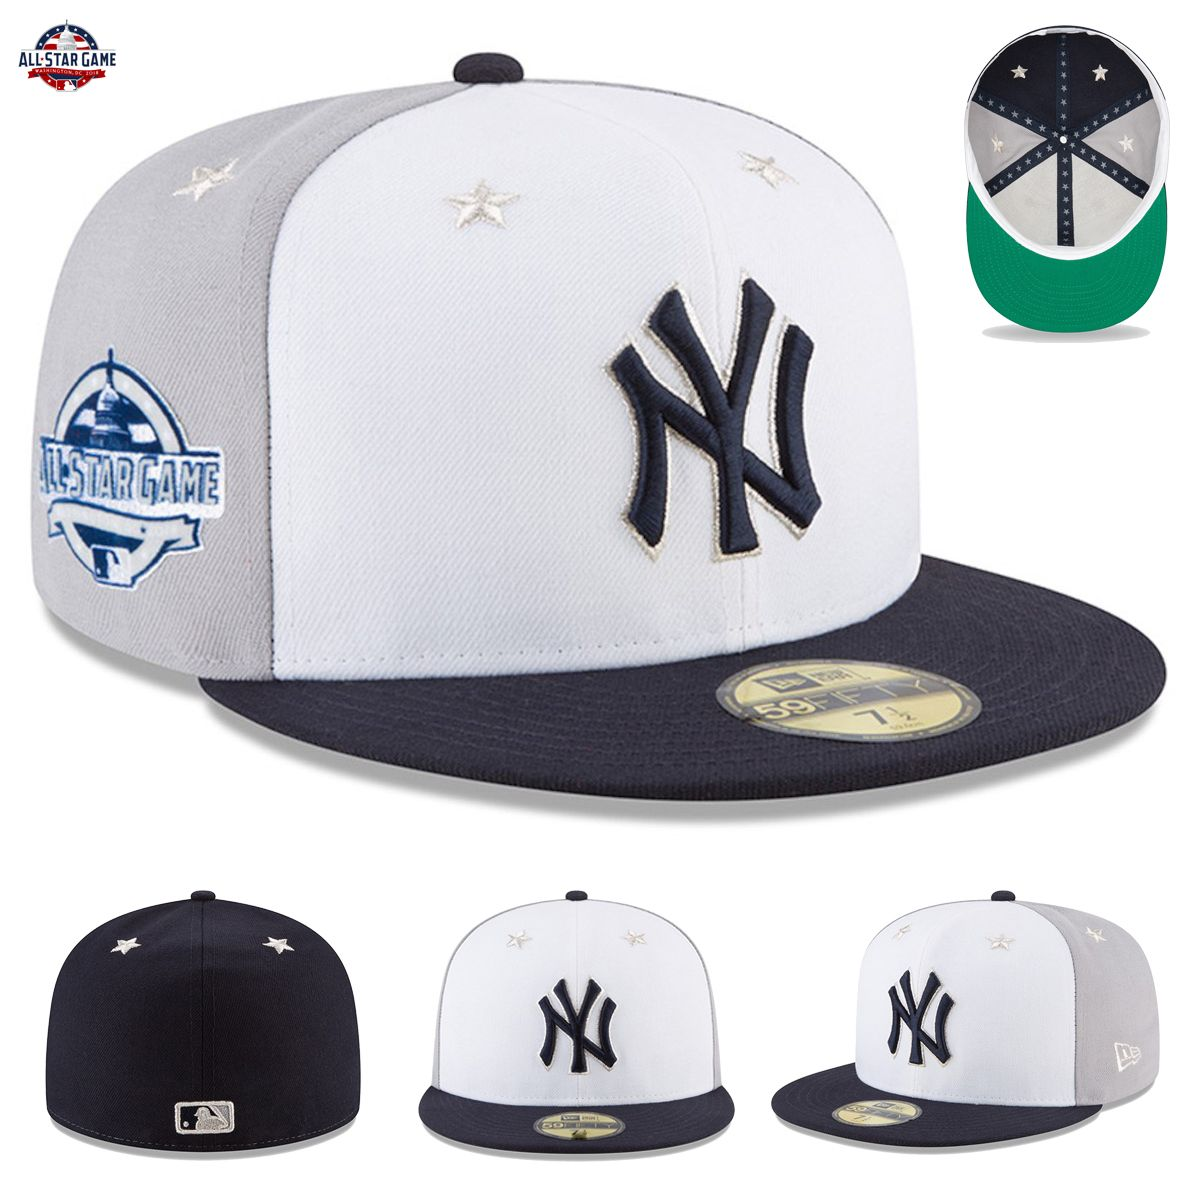 New York Yankees New Era 2018 MLB All-Star Game Hat Cap On-Field 59FIFTY  Fitted. Each year you look forward to MLB All-Star Week and seeing all your  ... 0f420604c3c